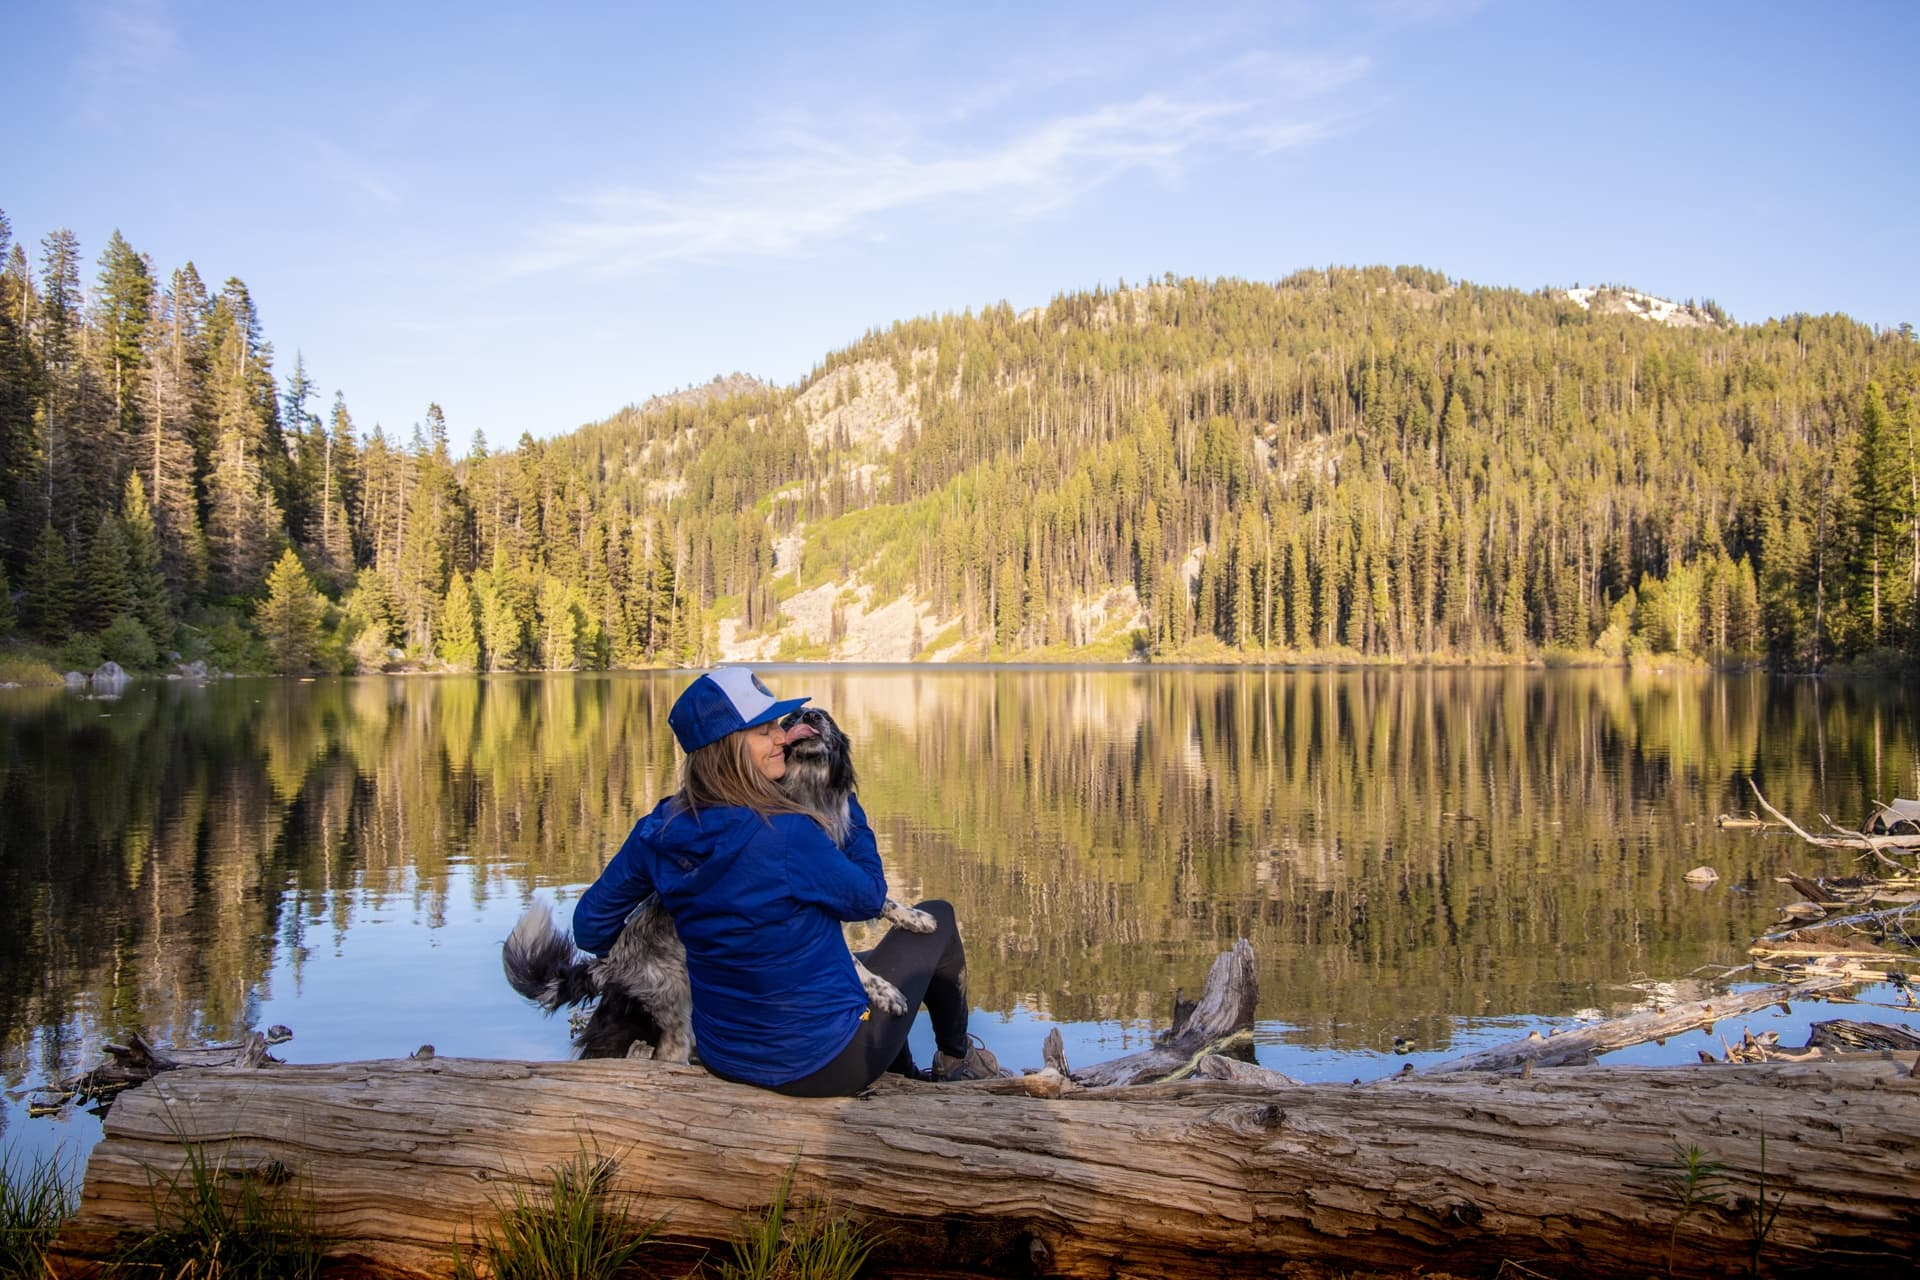 Boulder Lakes Loop near McCall, Idaho // An outdoor enthusiast's guide to the best hiking, hot springs, biking, rafting, hot springs, and more summer outdoor activities while visiting McCall, Idaho.